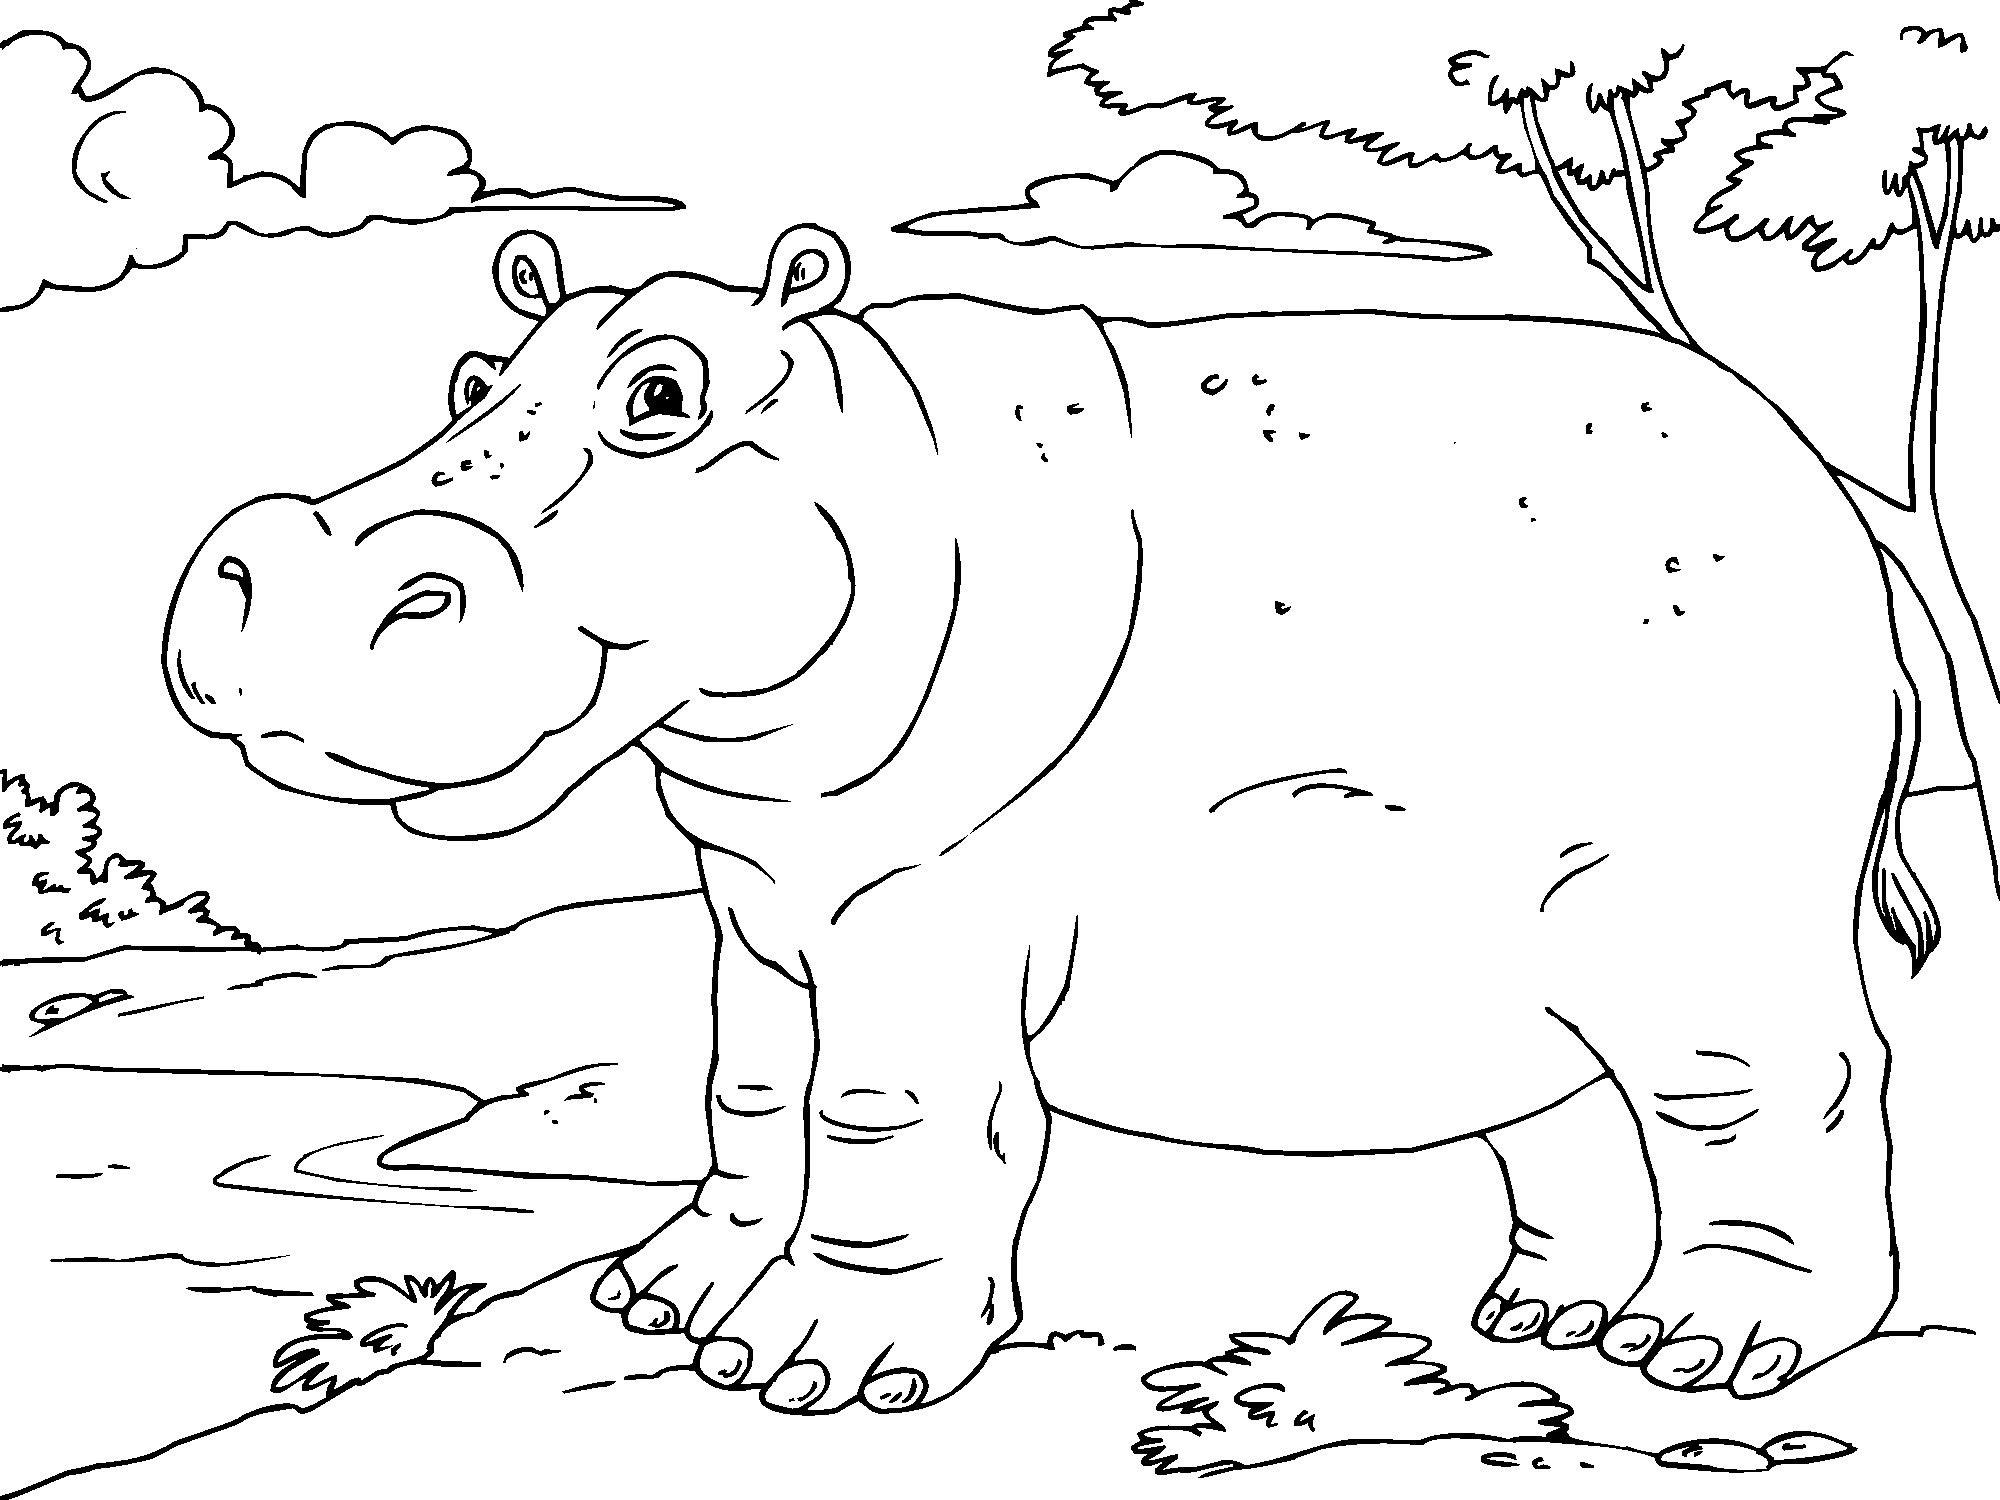 Perspective Texas Tech Coloring Pages Page to Print – Free Coloring ...